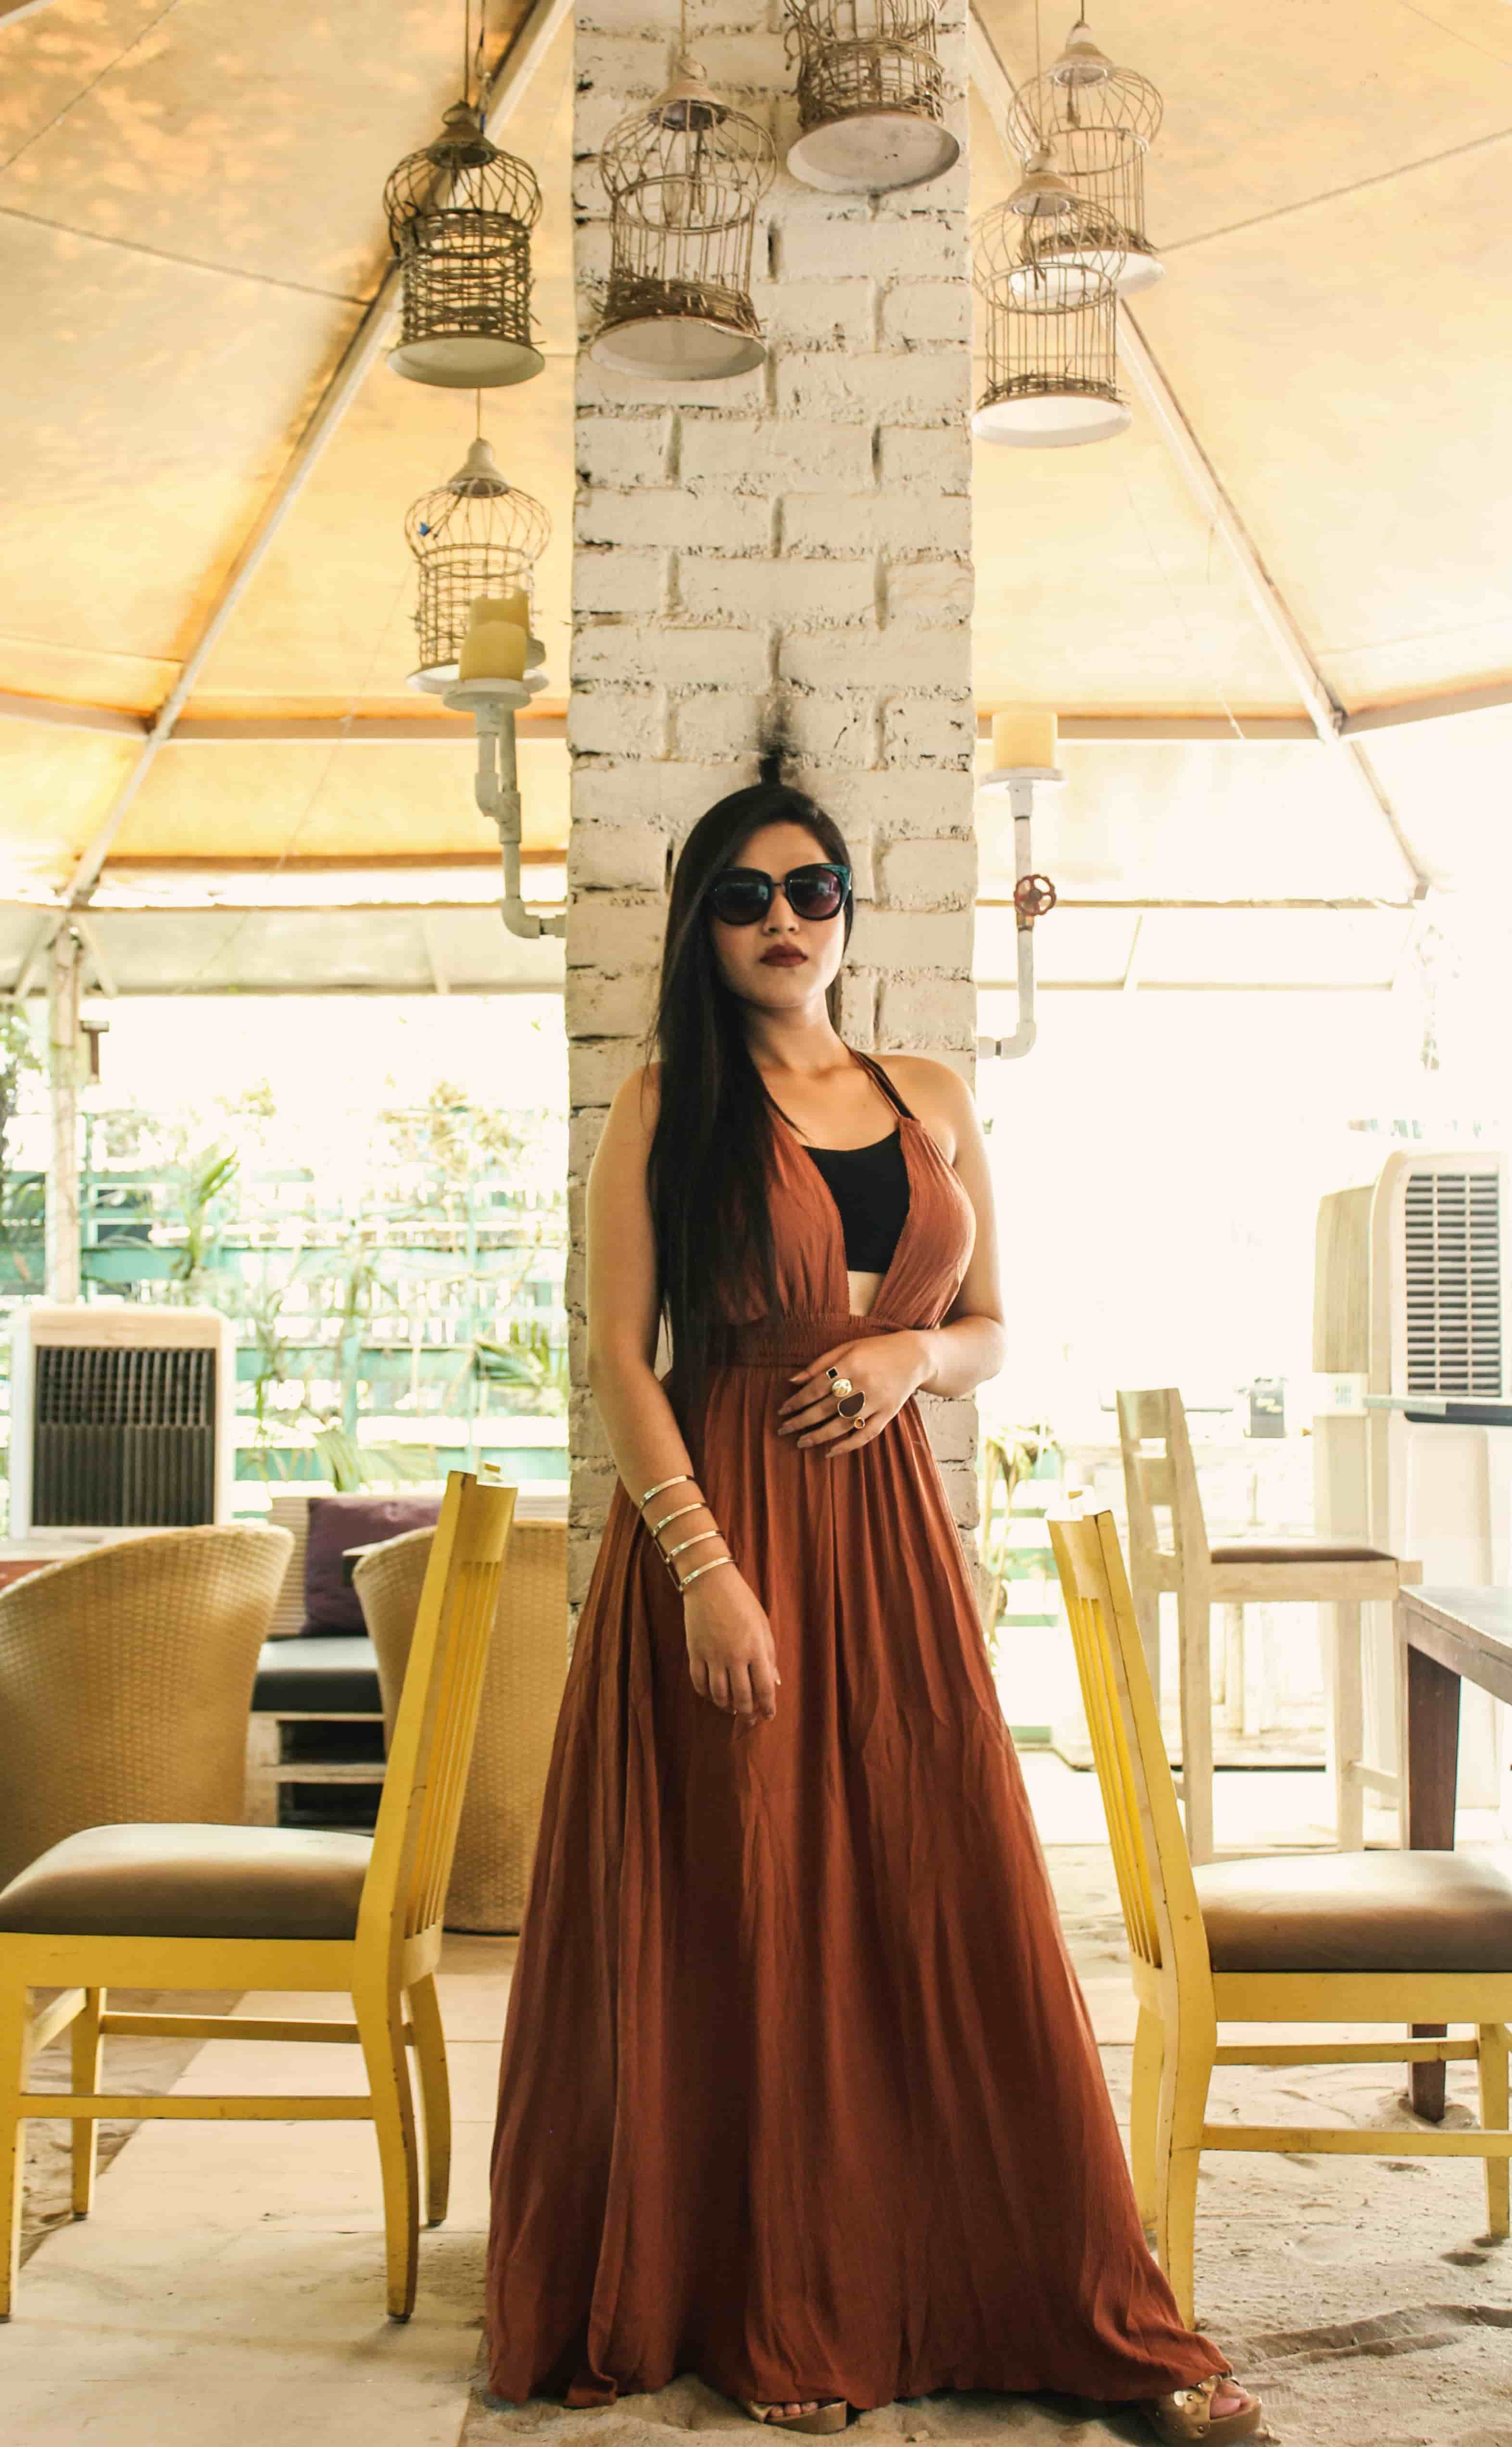 Vacation Series Beach Wear Tan Dress Maxi Dress Vacation Wear Curated Outfit Tan Dresses Formal Dresses Long [ 5088 x 3144 Pixel ]